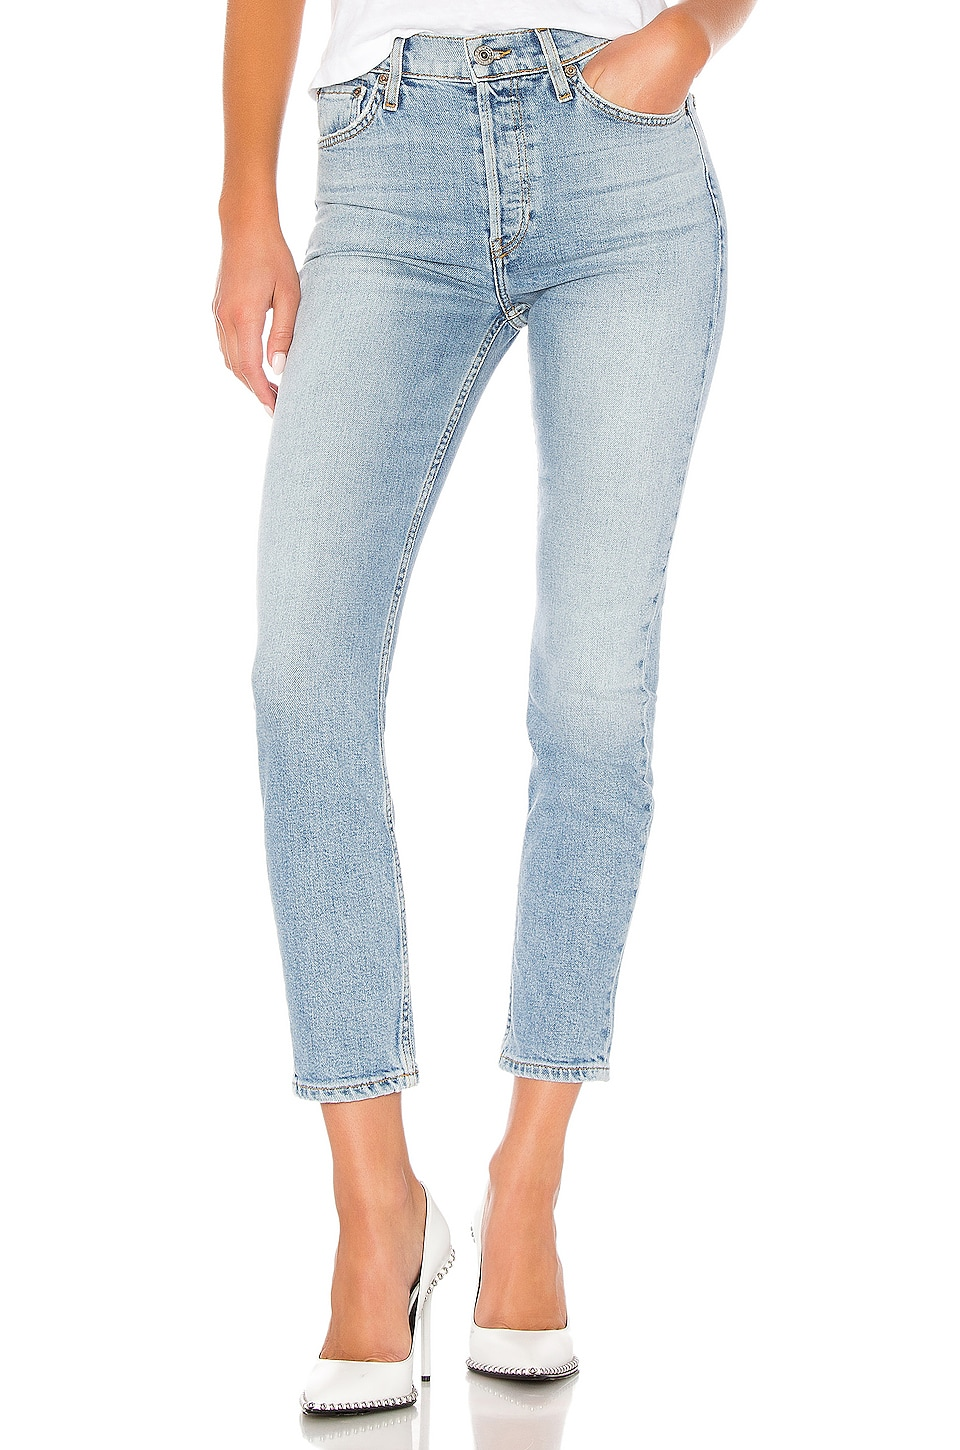 RE/DONE High Rise Ankle Crop Jean in Pale Indigo